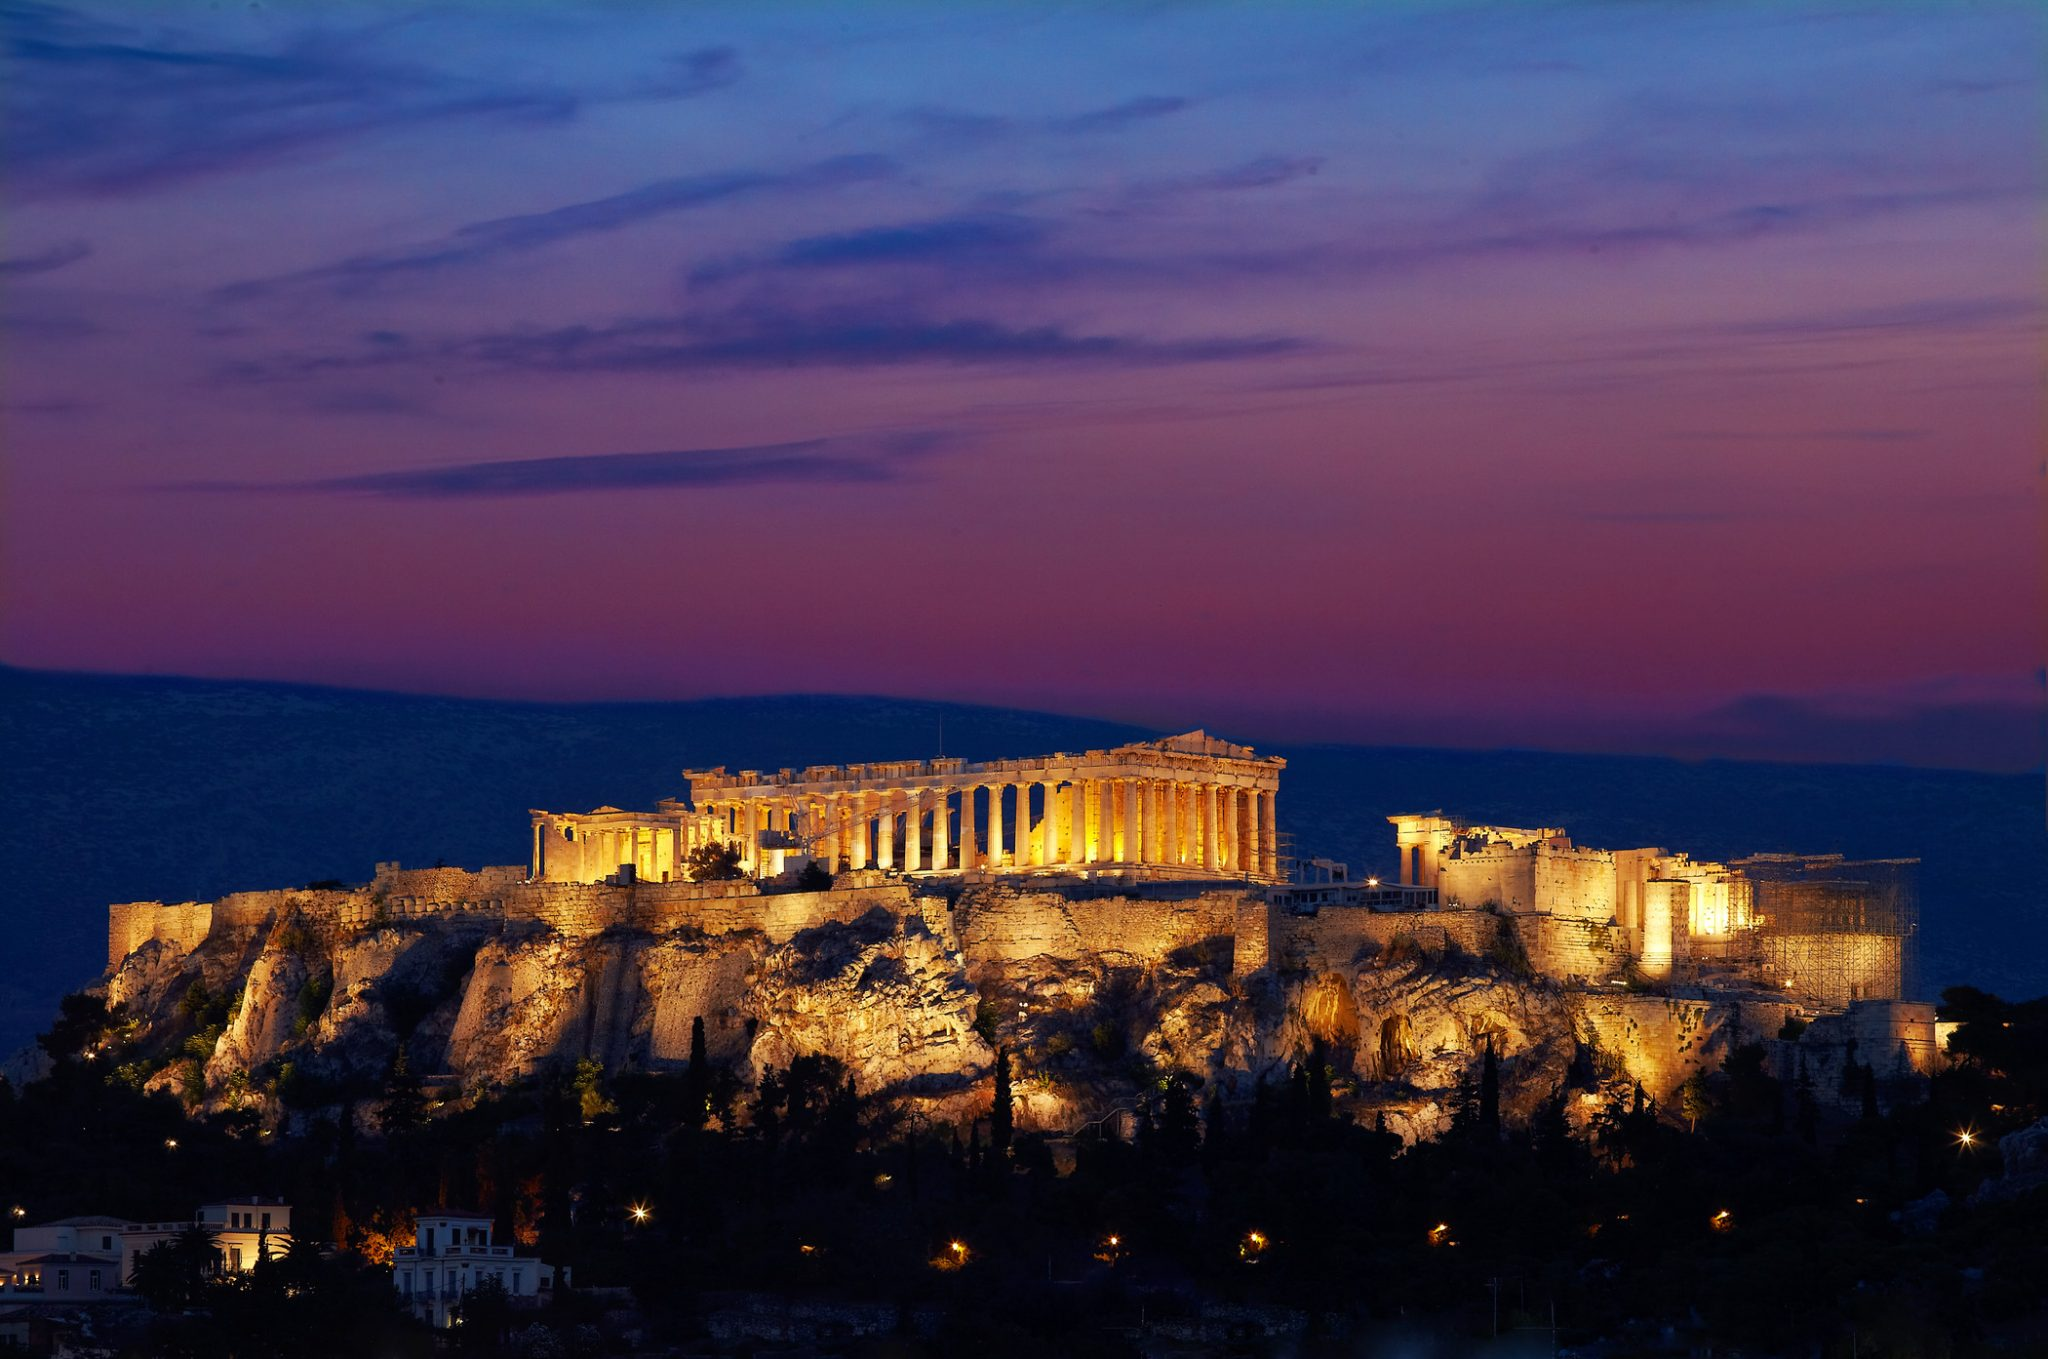 View of the Acropolis from Hotel Grande Bretagne rooftop